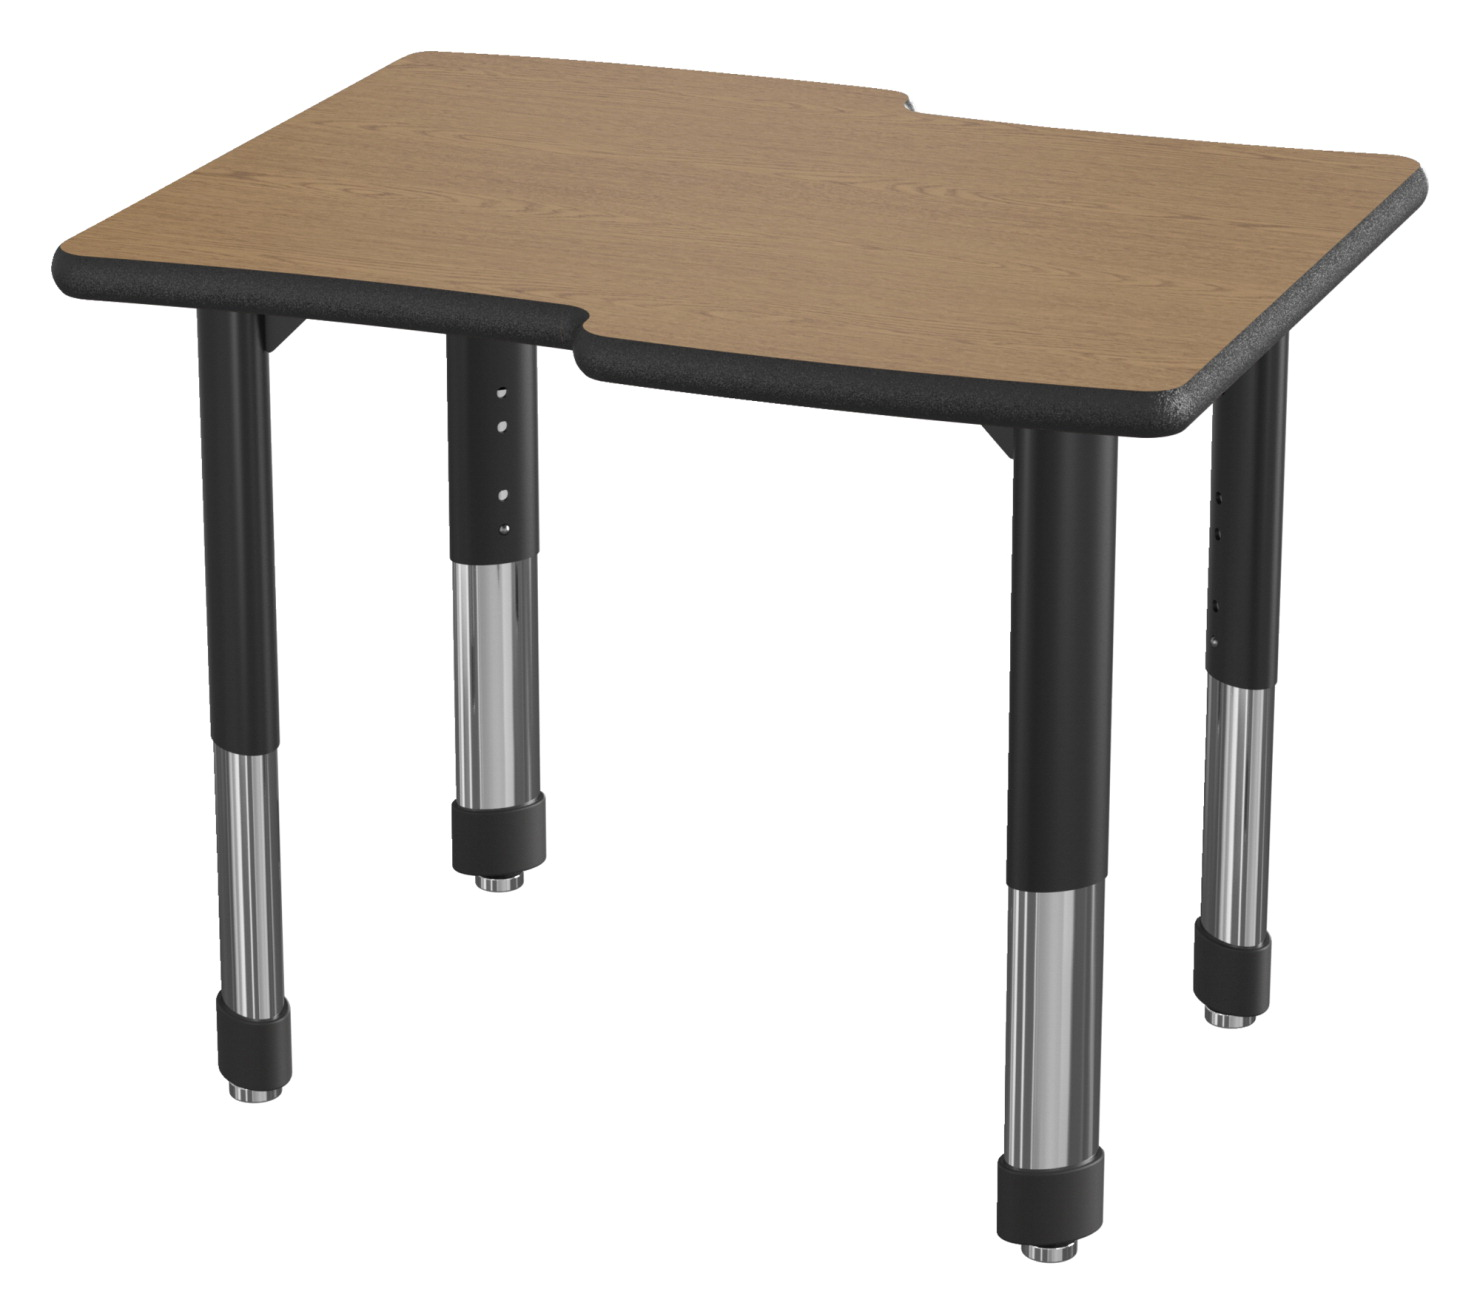 Classroom Select NeoShape Laminate Shaped Desk, LockEdge, Waverly, 30 x 24 Inches, Various Options